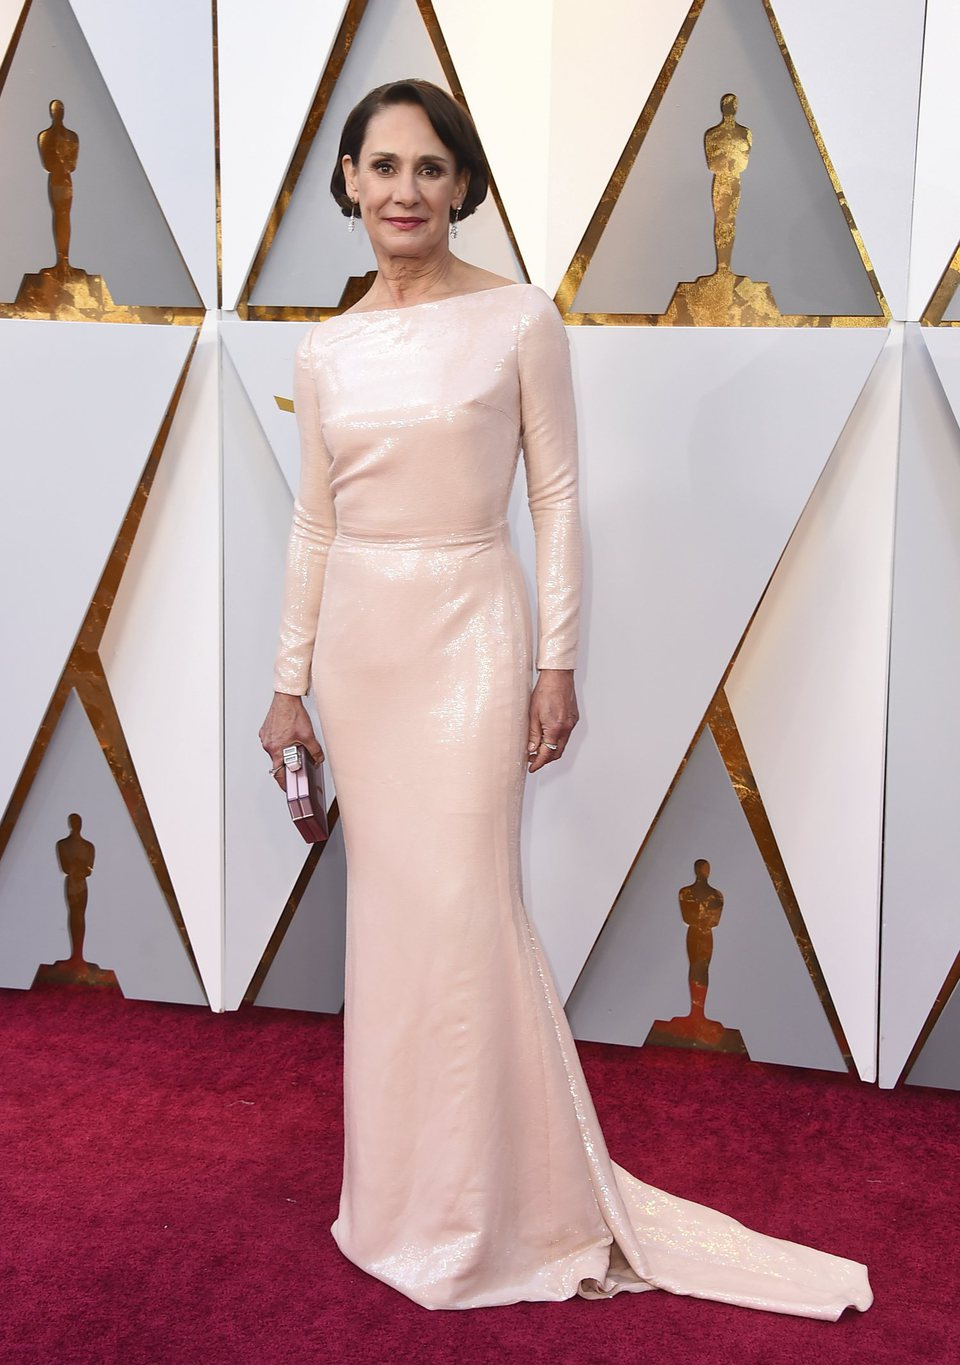 Laurie Metcalf at the Oscars 2018 red carpet